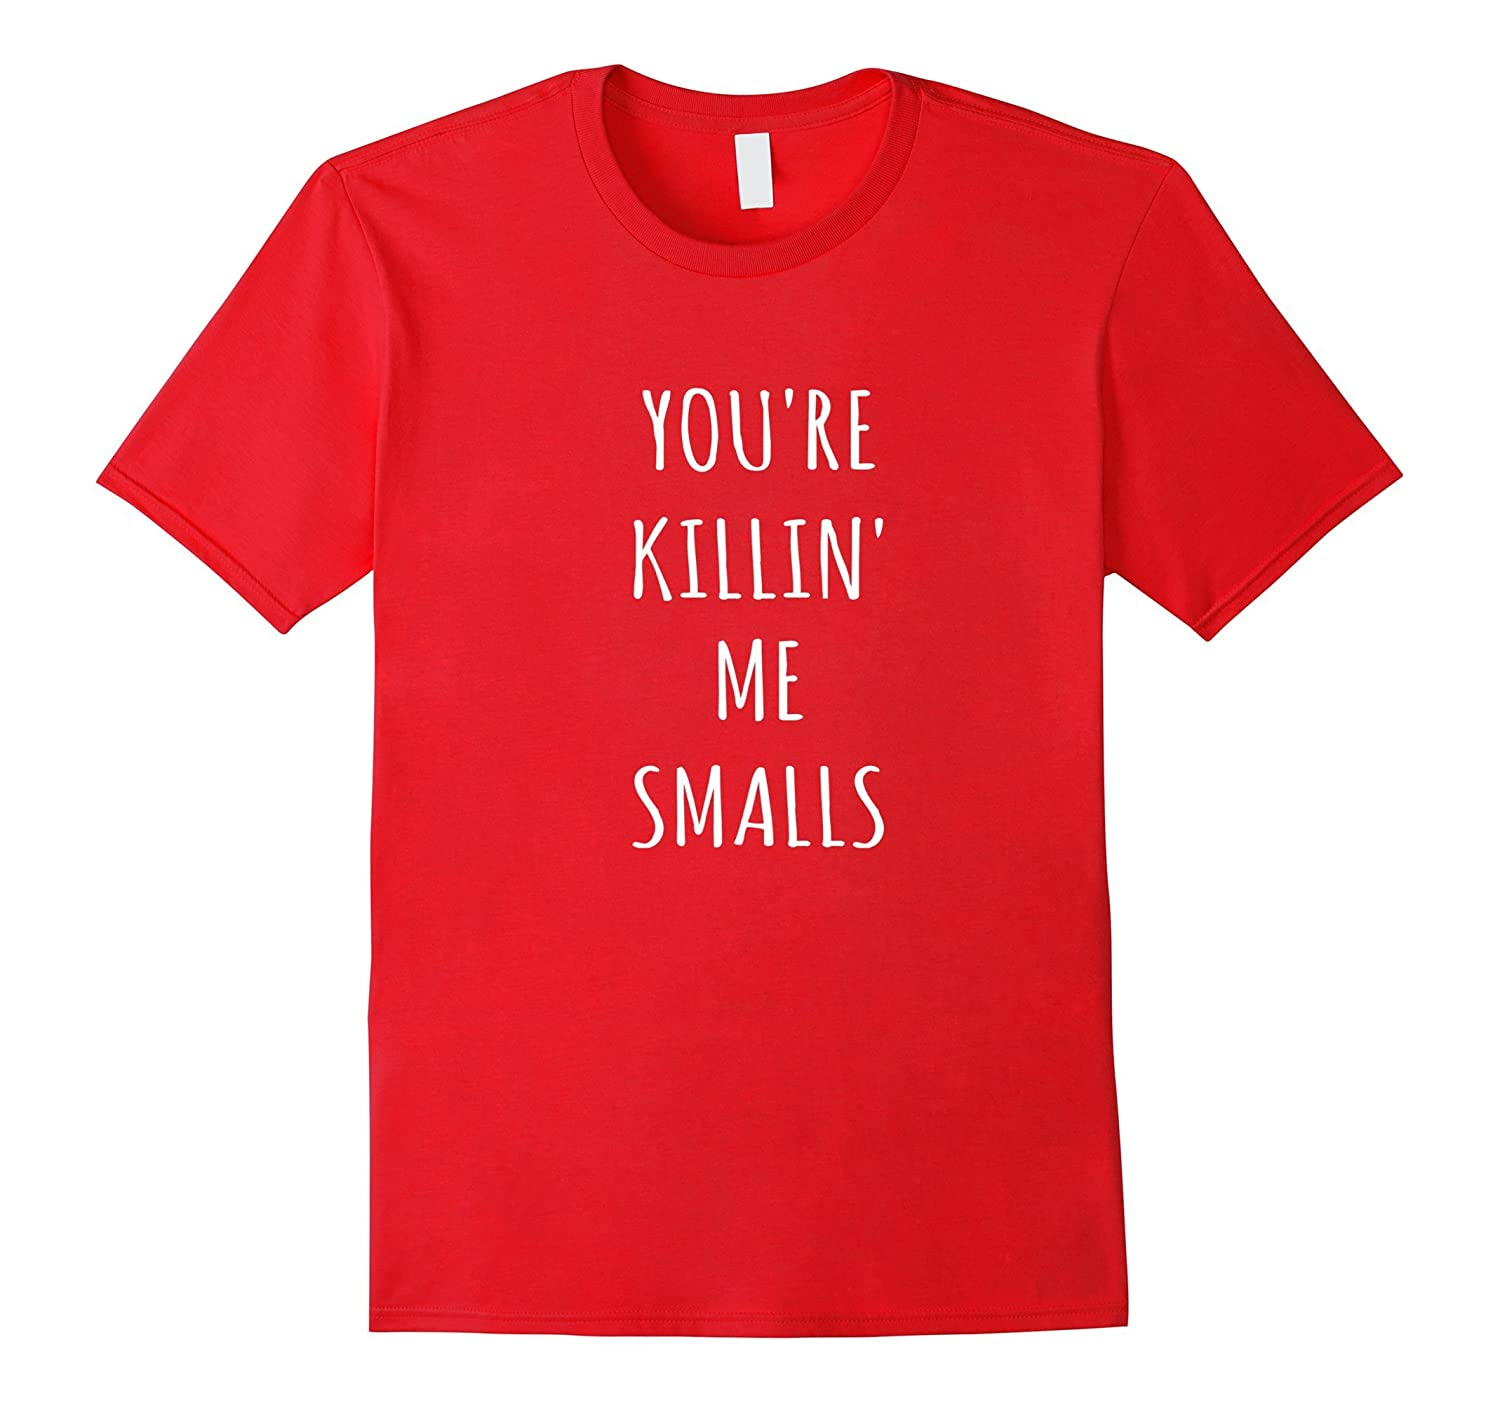 Your Killing Me Smalls Tees Tshirts For Men Women And Kids-T-Shirt